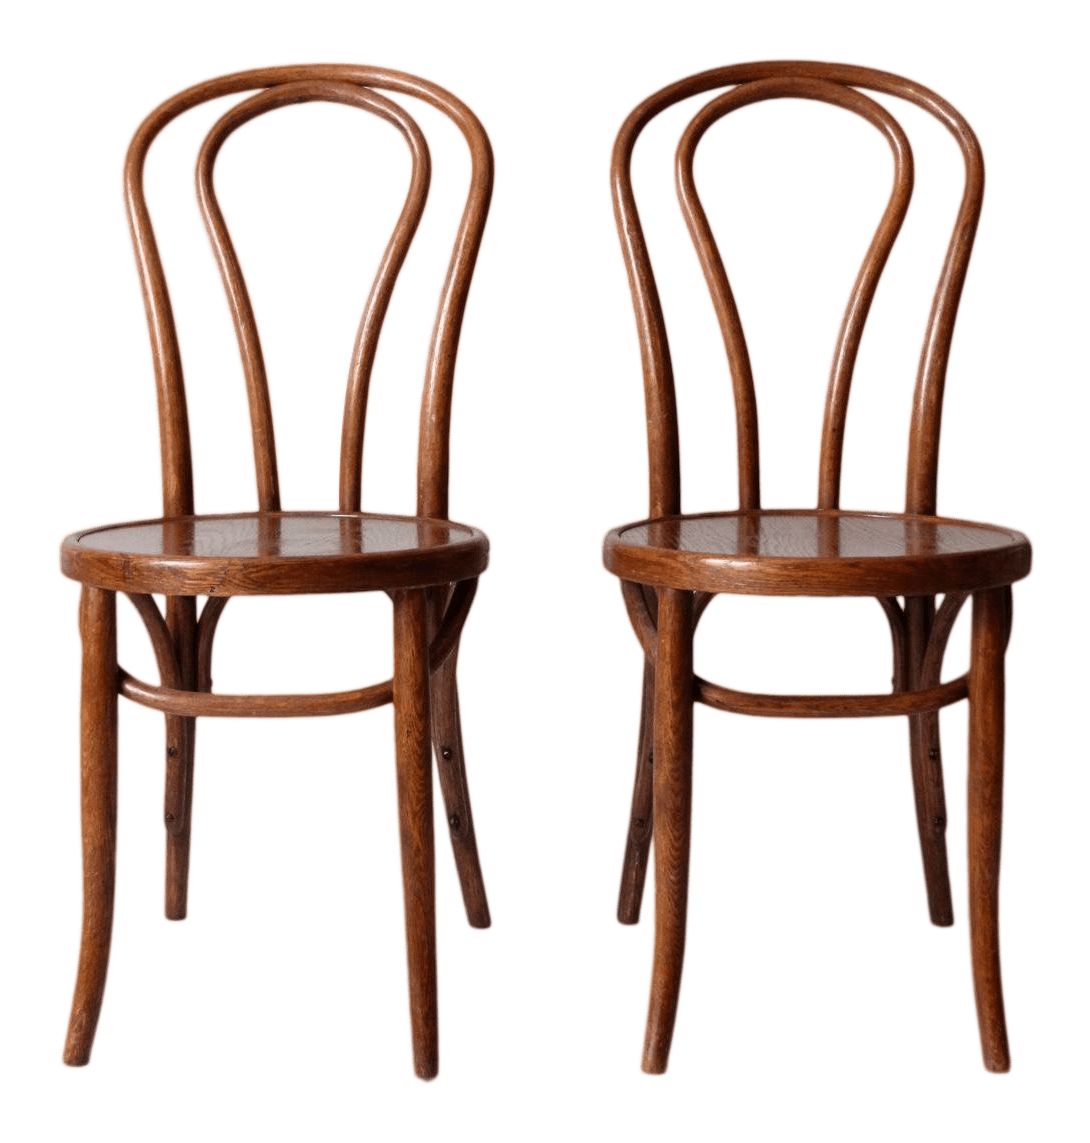 vintage bentwood chairs snille swivel chair review a pair chairish for sale